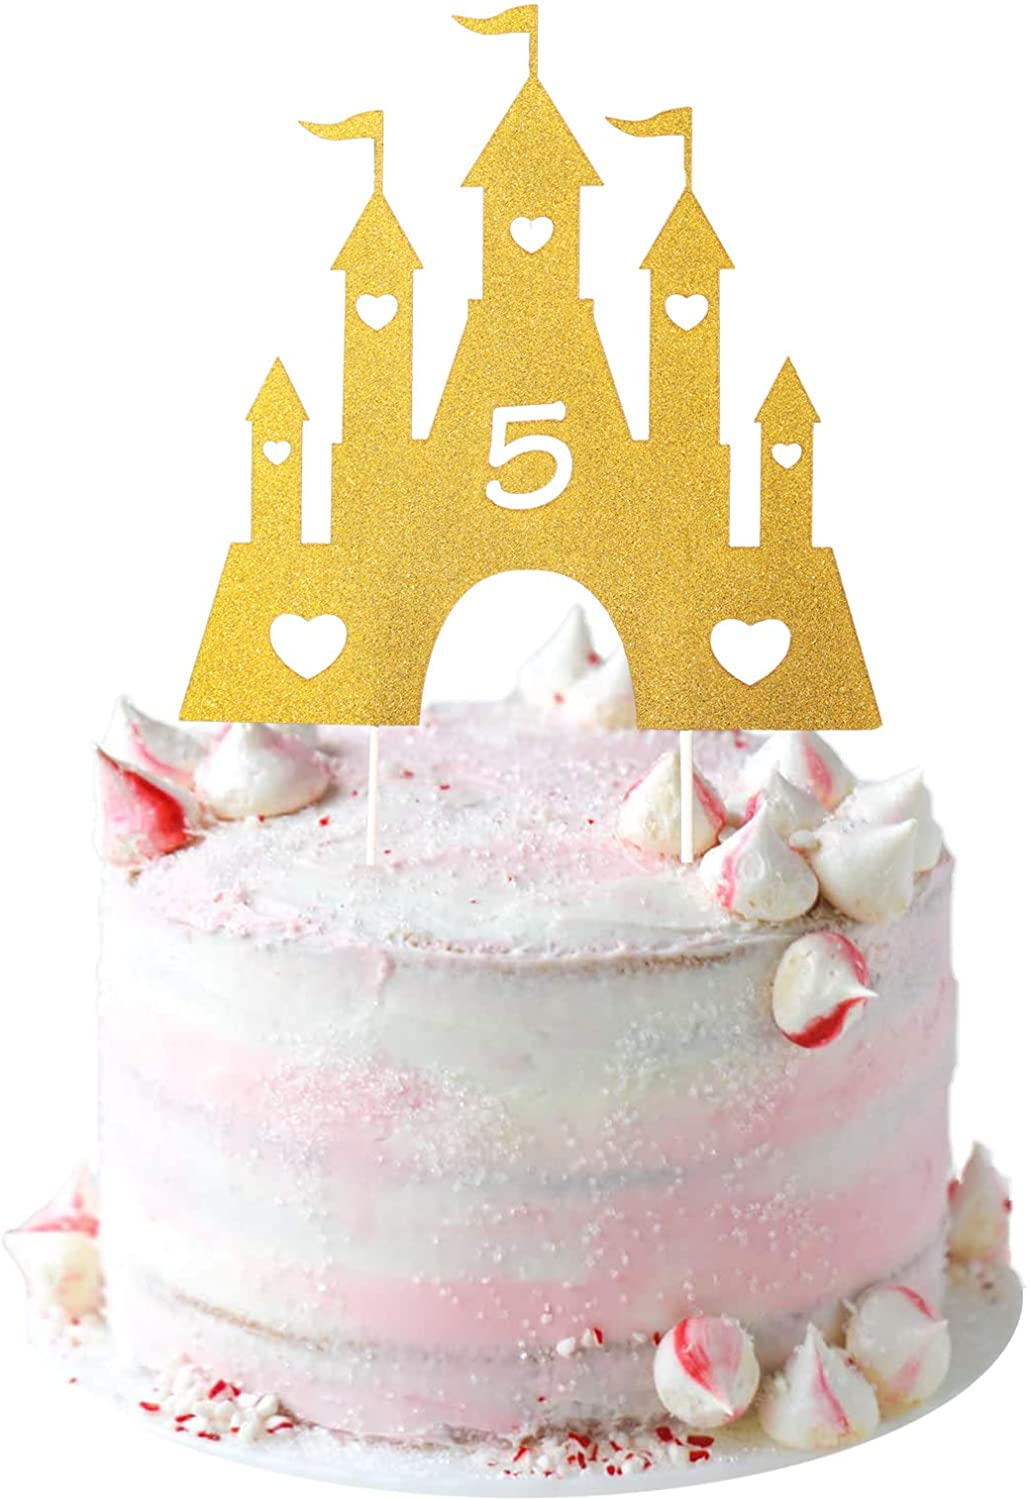 Princess Cake Topper 5, Castle Cake Topper 5, Princess 5th Birthday Cake Topper for Girls Princess Birthday Party Decorations